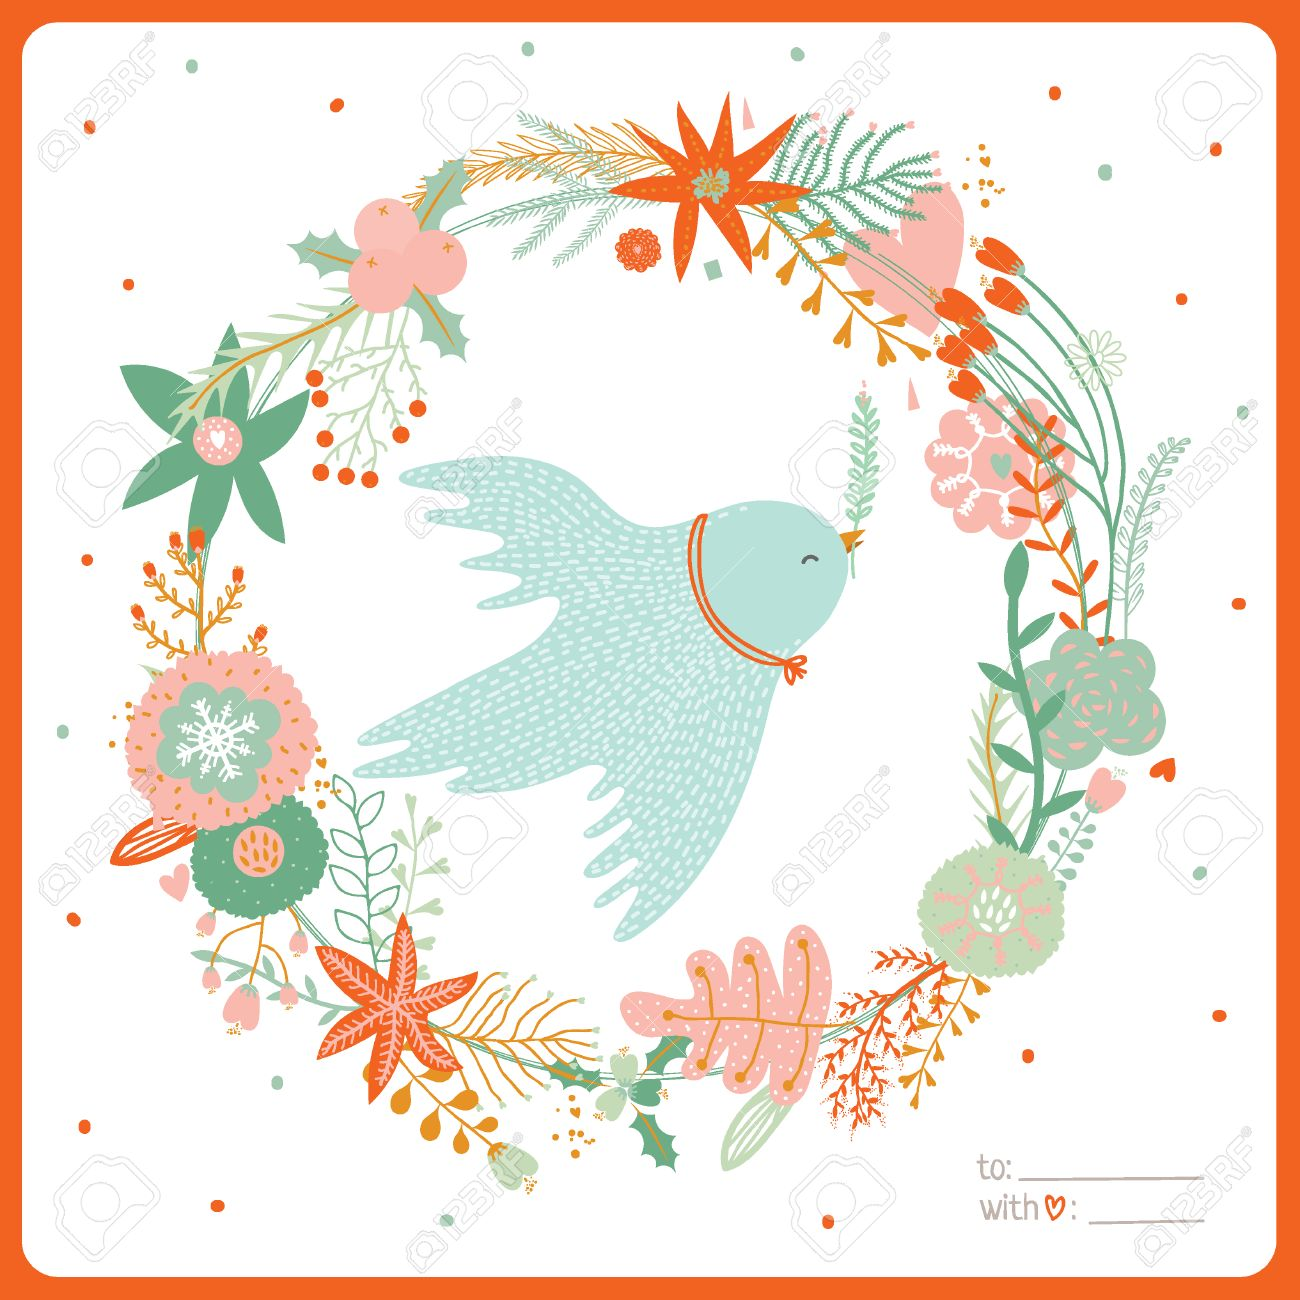 vector vintage merry christmas and happy new year card with flowers and winter dove greeting stylish illustration of winter romantic wreath of flowers